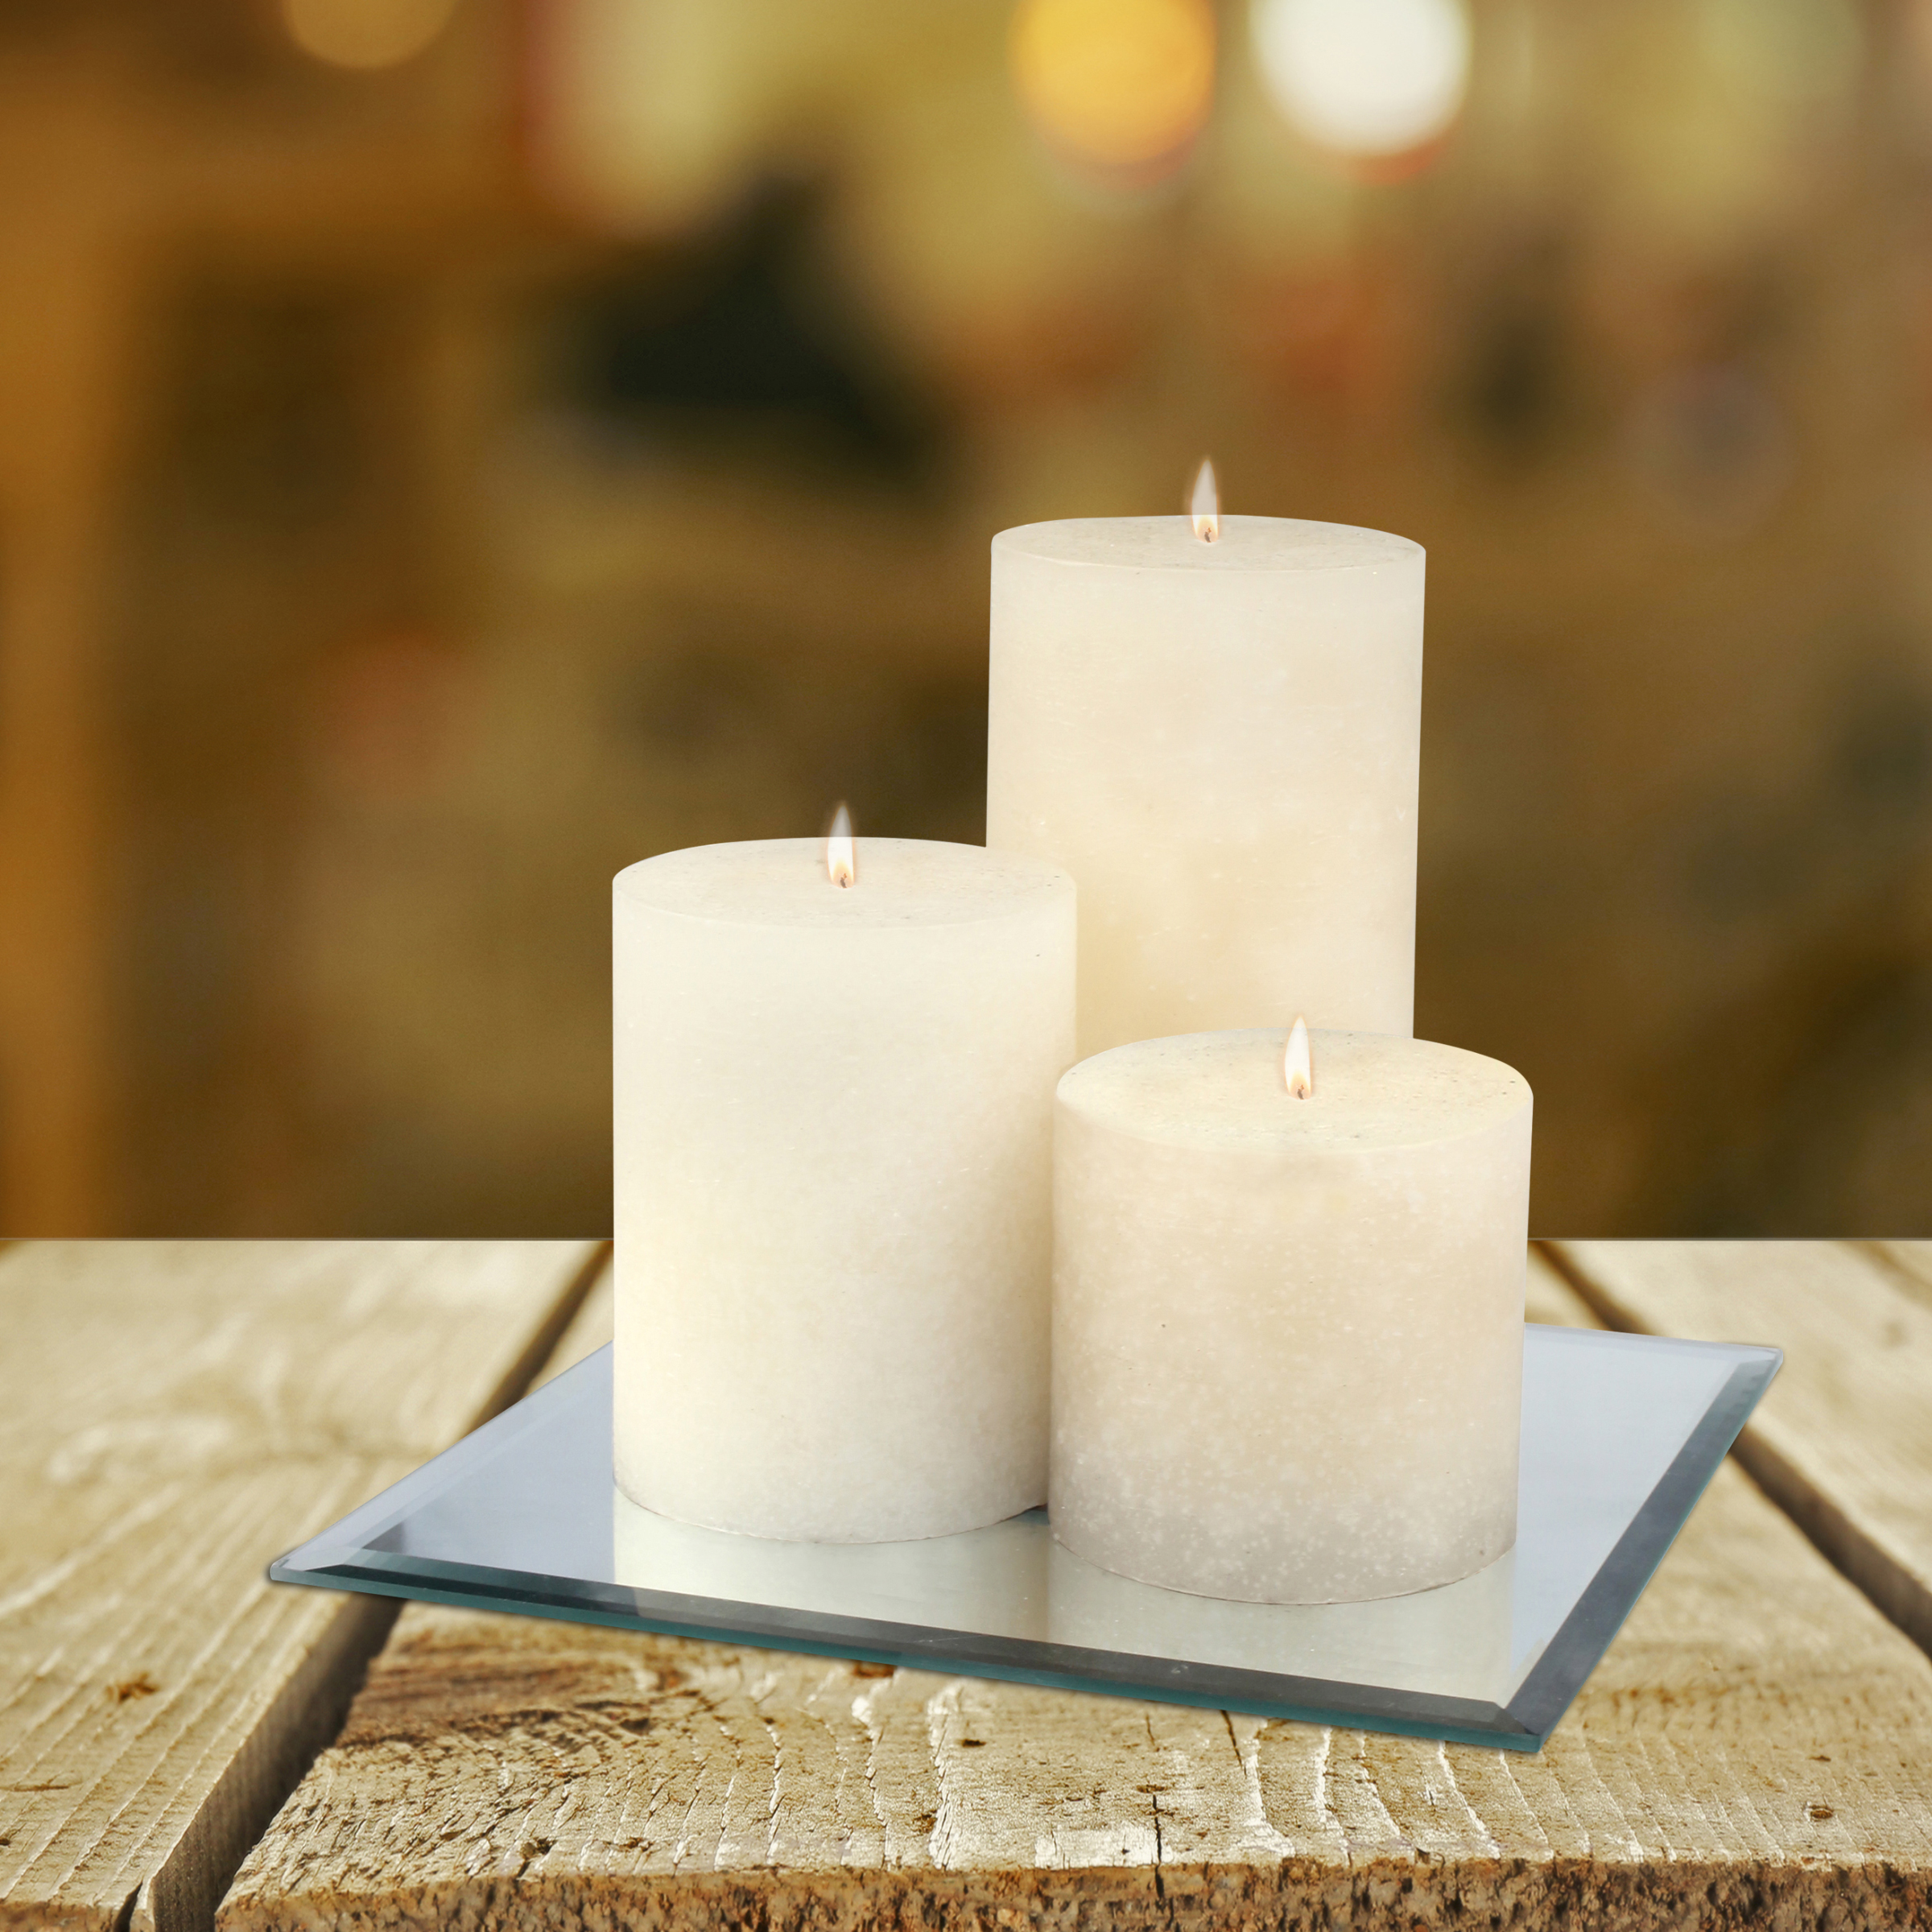 Mainstays Square Mirror Candle Plate with Beveled Edges and Felt Pads, Pillar Candle Holder